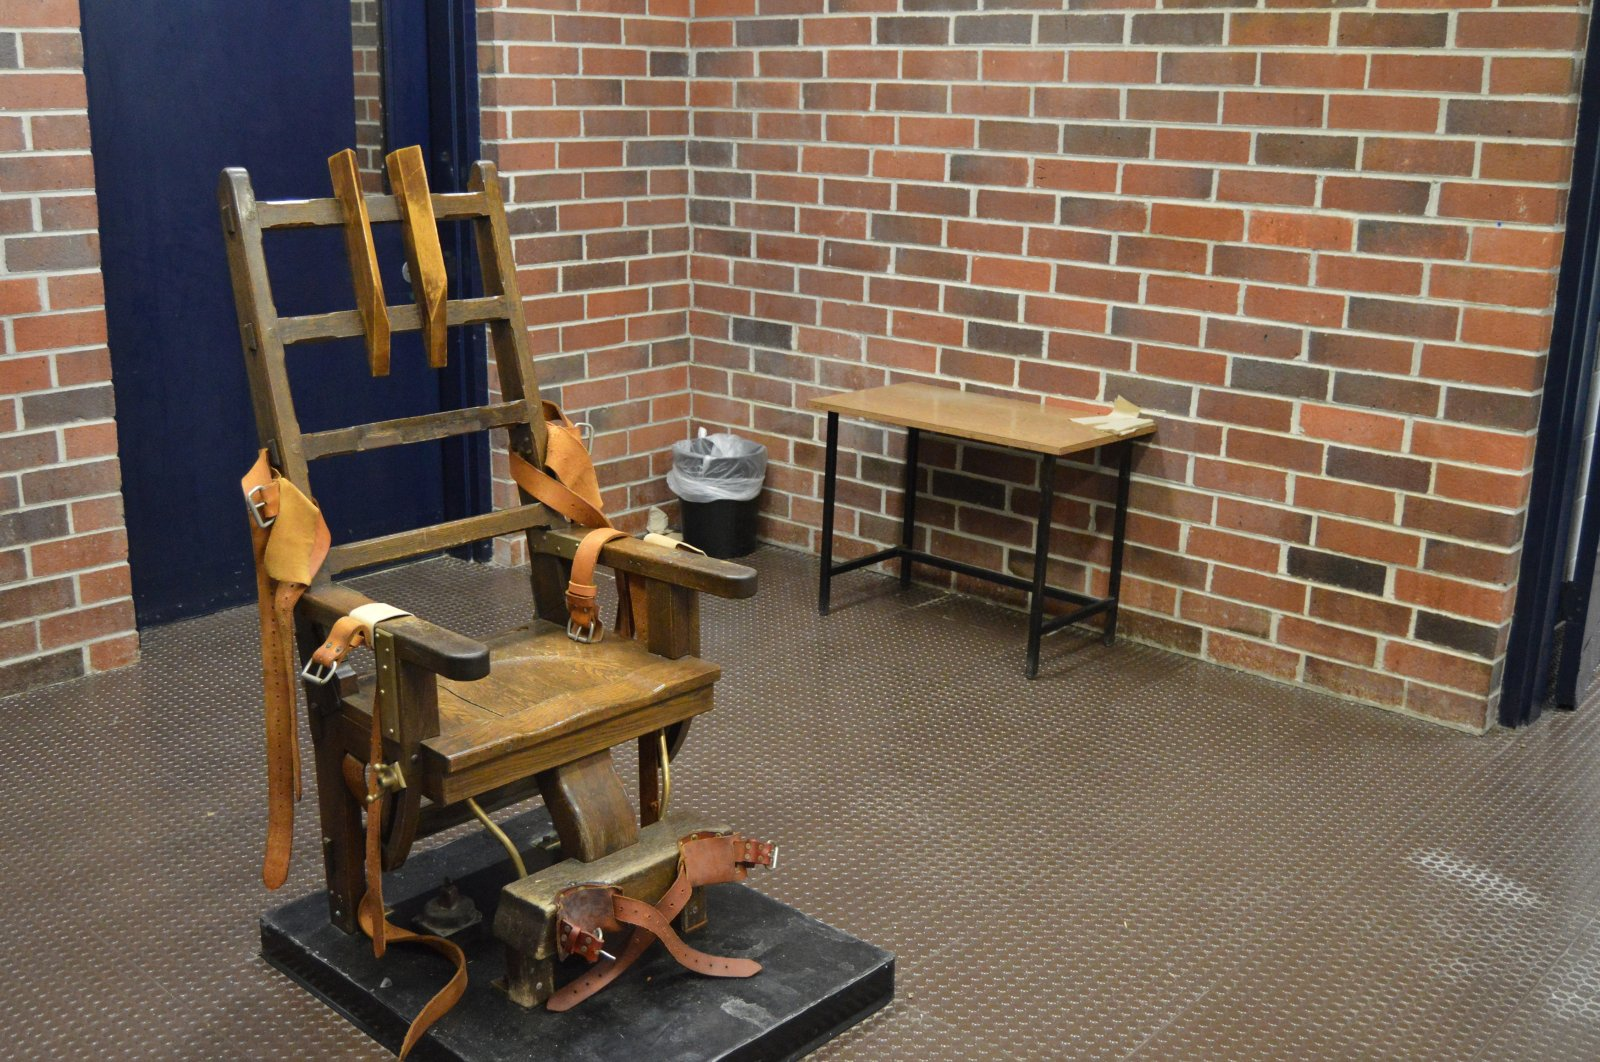 South Carolina's electric chair in Columbia, South Carolina, U.S., March 2019. (South Carolina Department of Corrections via AP, File)